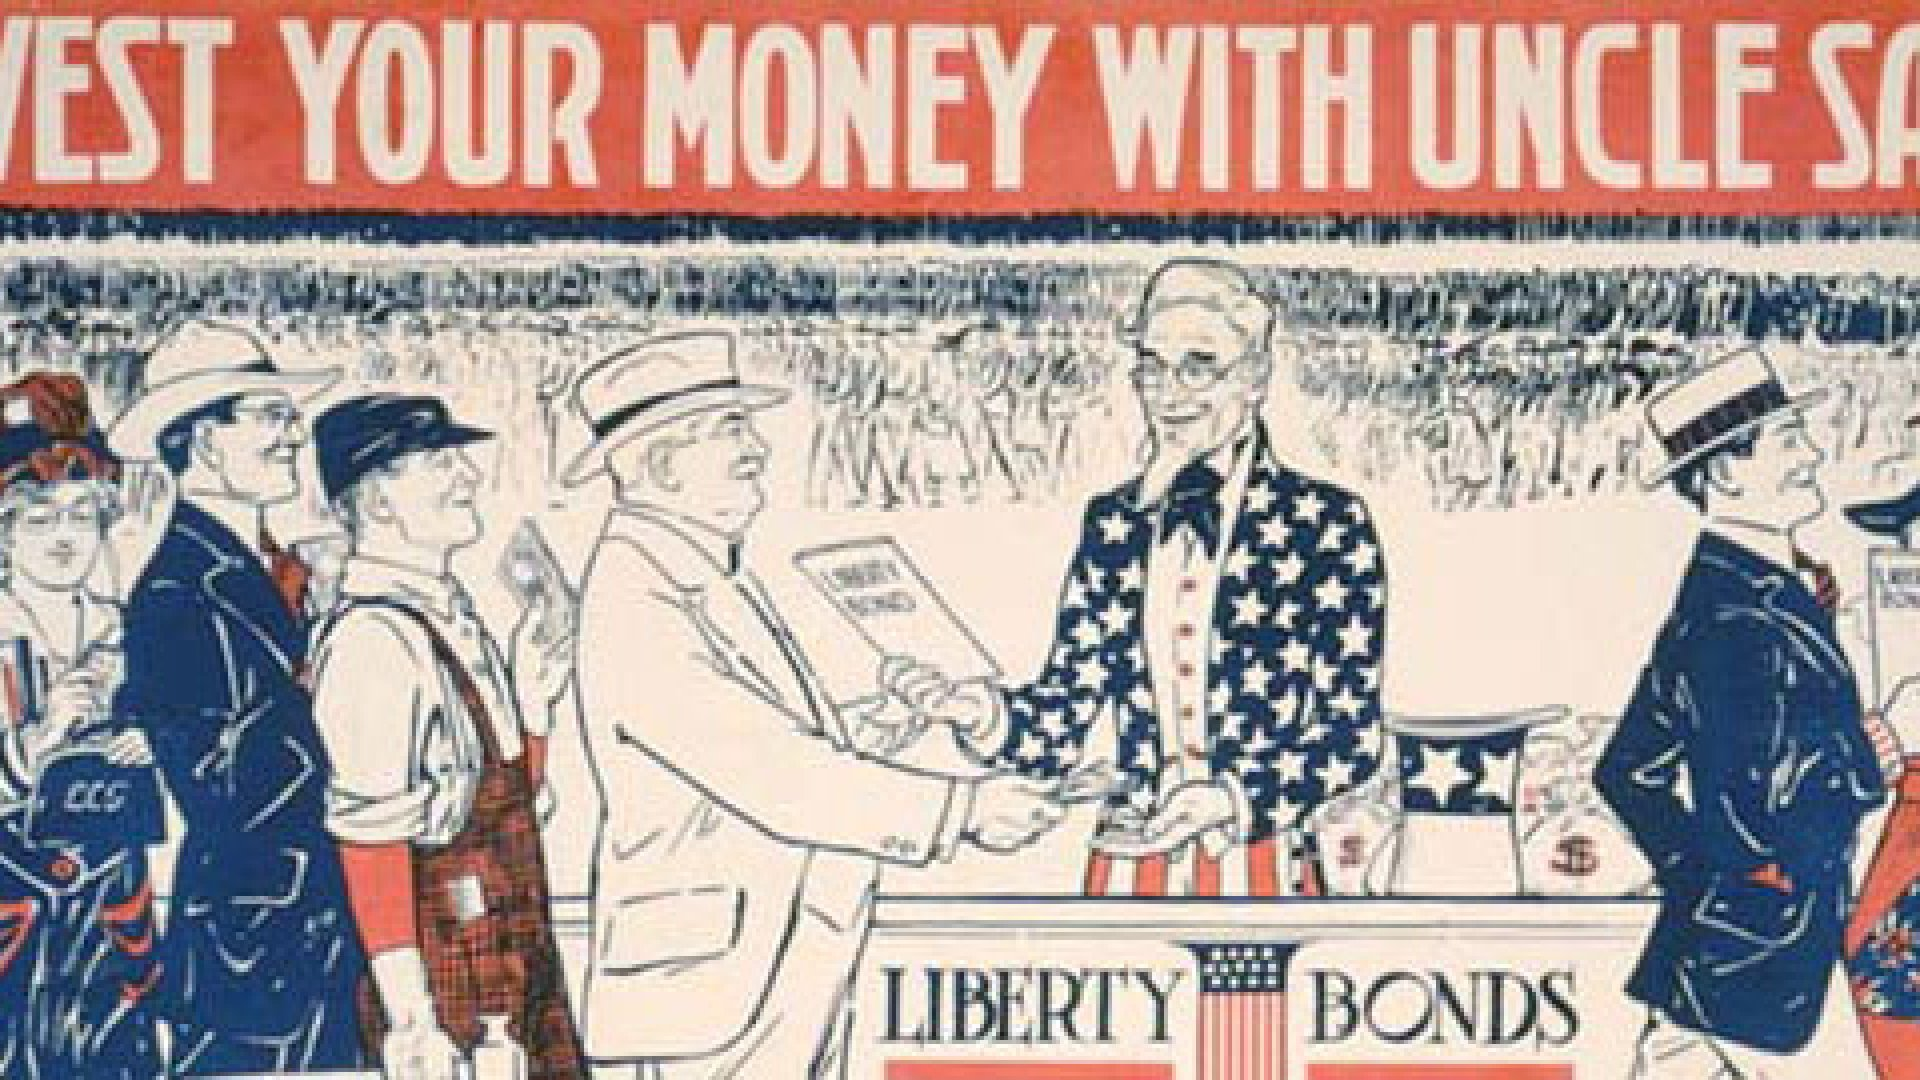 Much like we did with War Bonds during WWII, this is an opportunity for Americans to invest in our own future.